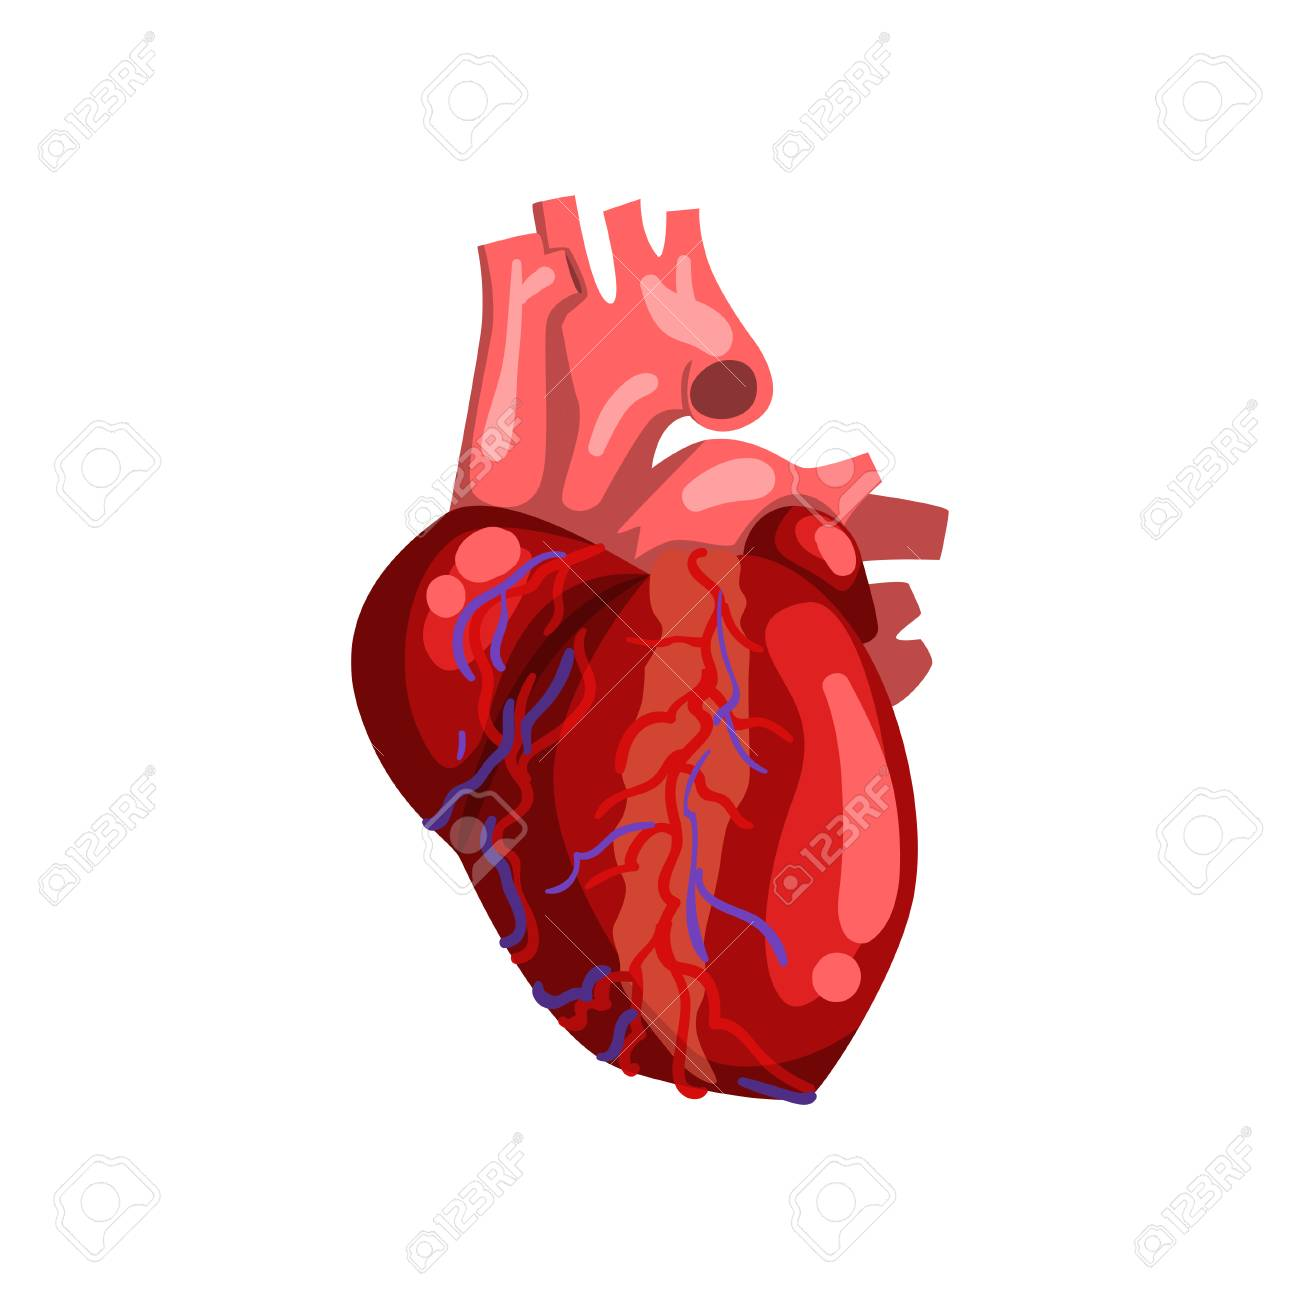 Human Heart, Internal Organ Anatomy Vector Illustration On A ...